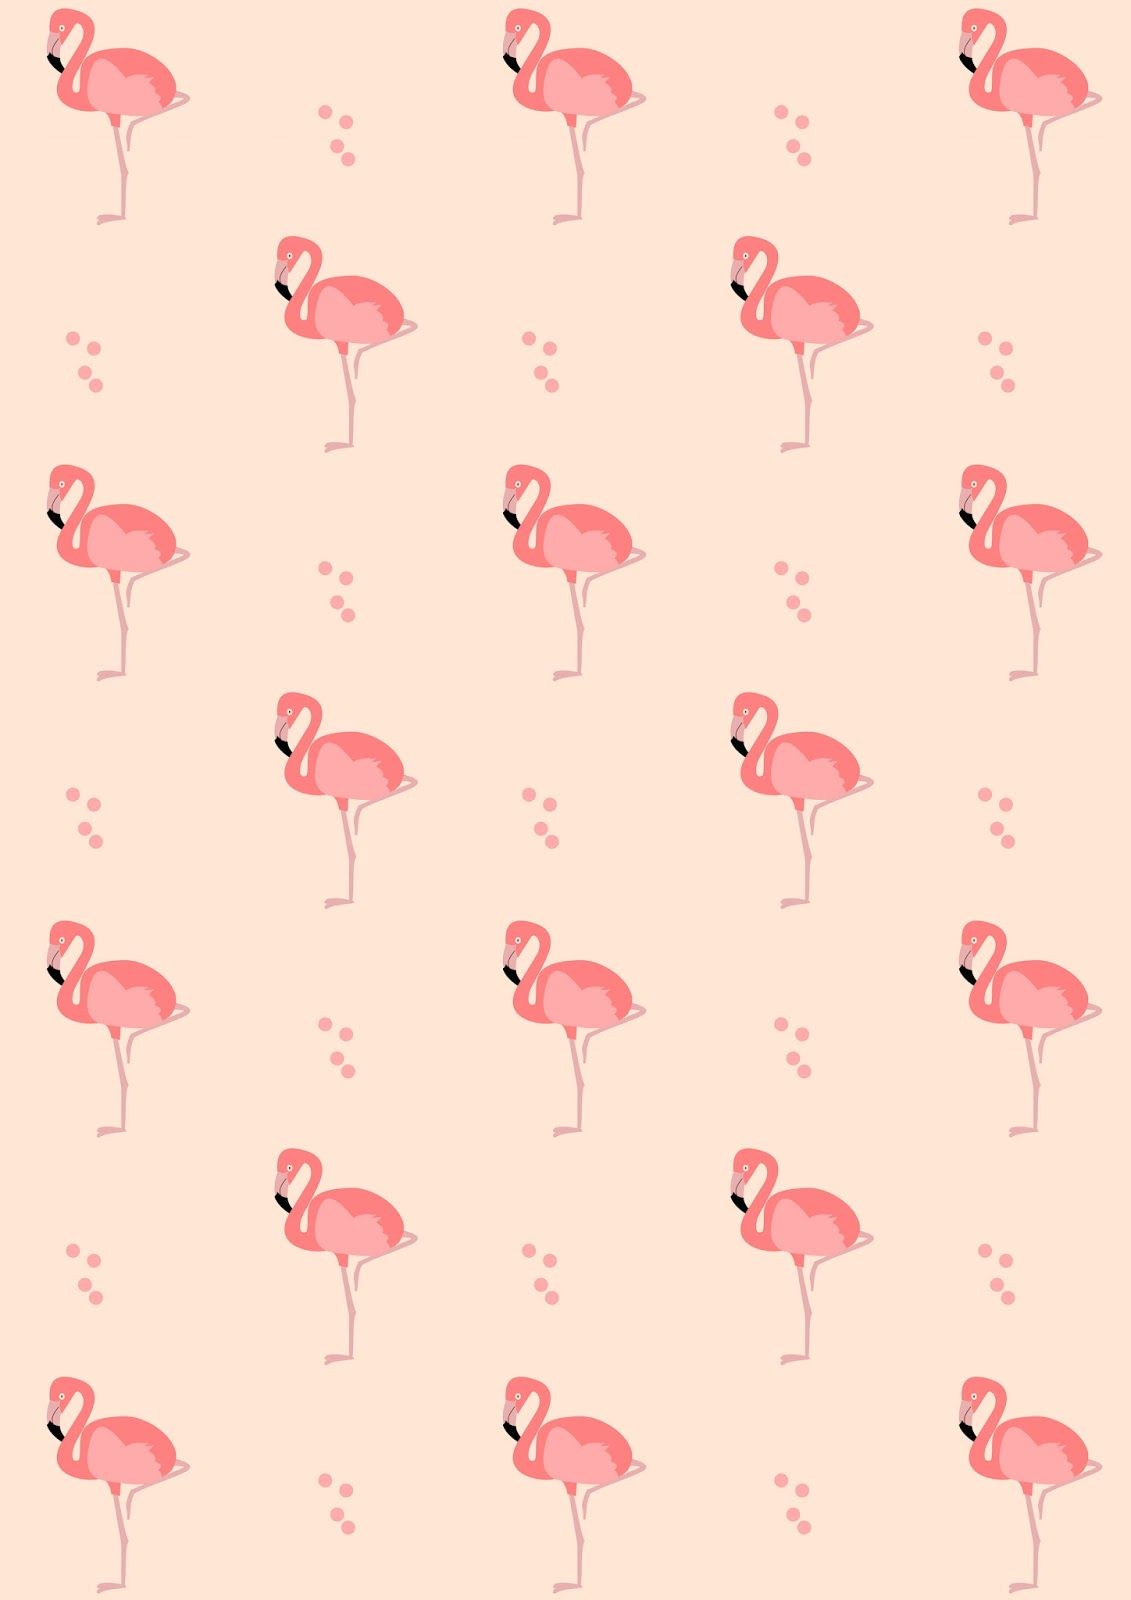 how to make a flamingo out of paper